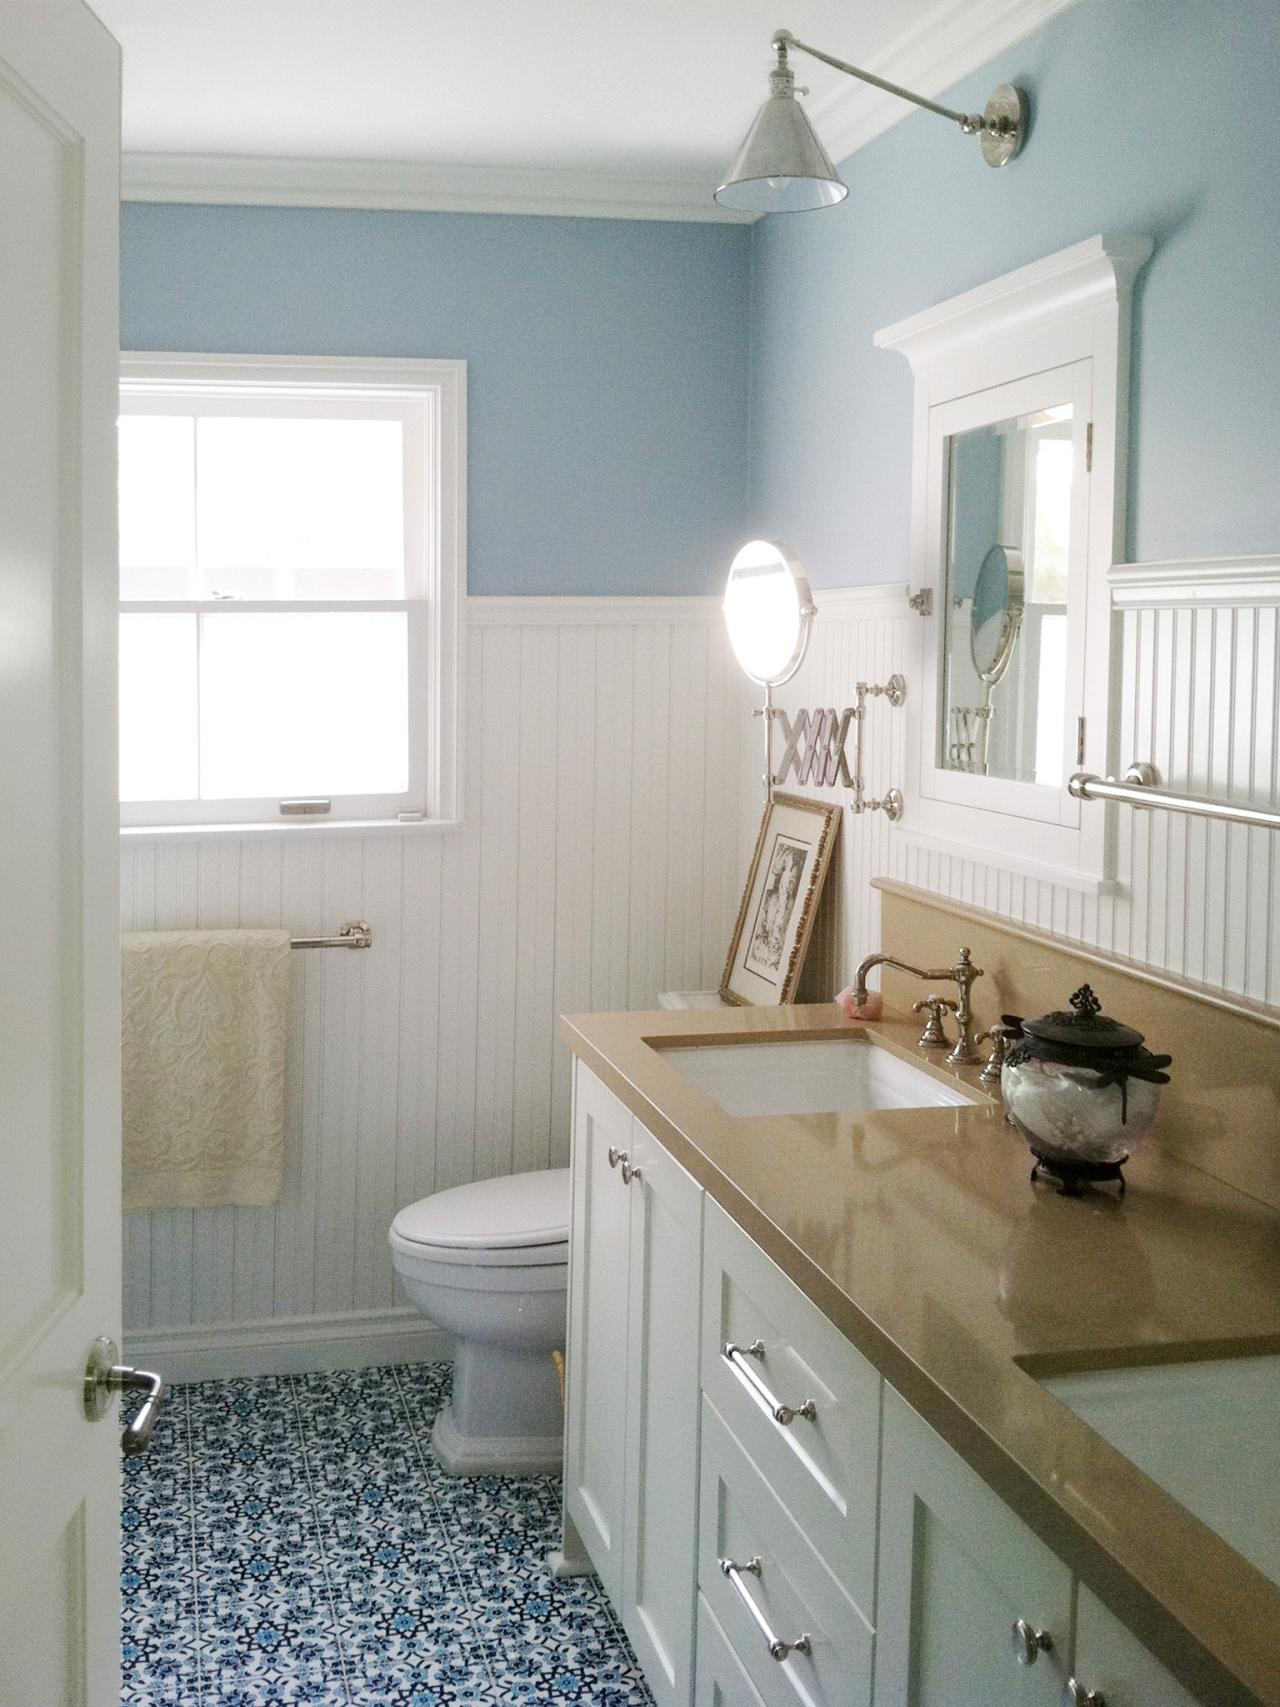 Design trend decorating with blue color palette and - Bathroom remodel ideas with wainscoting ...